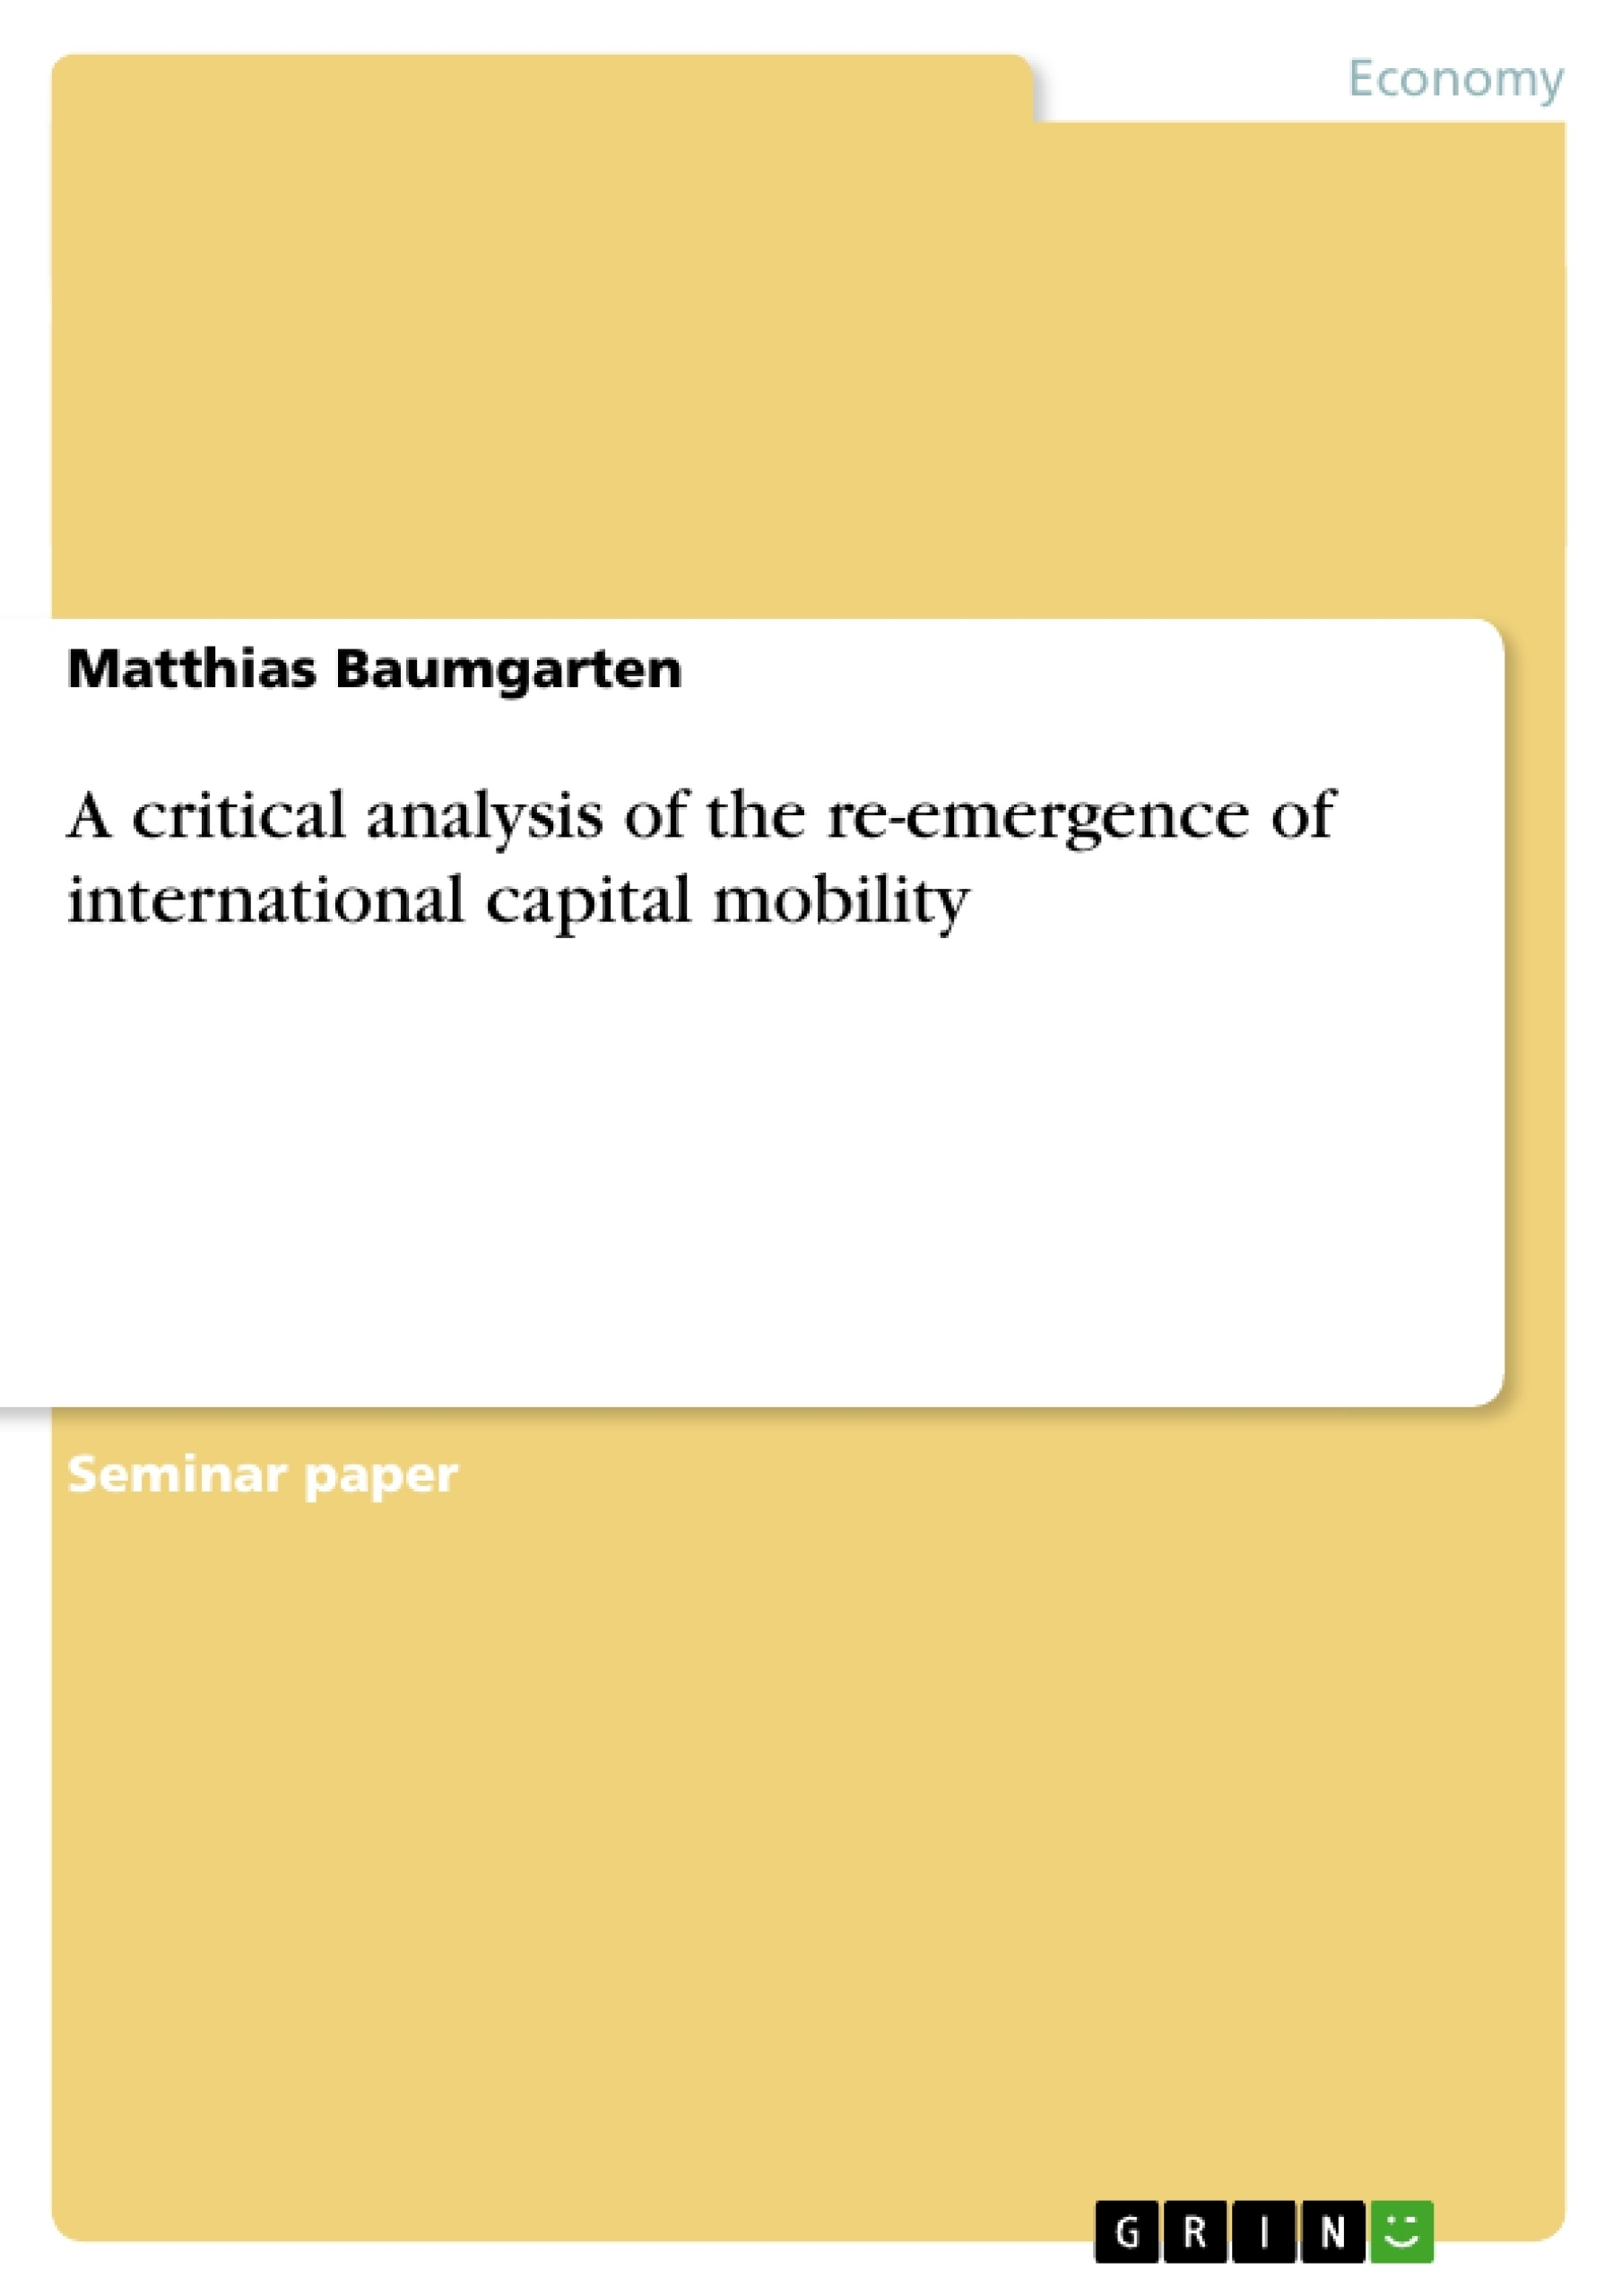 Title: A critical analysis of the re-emergence of international capital mobility